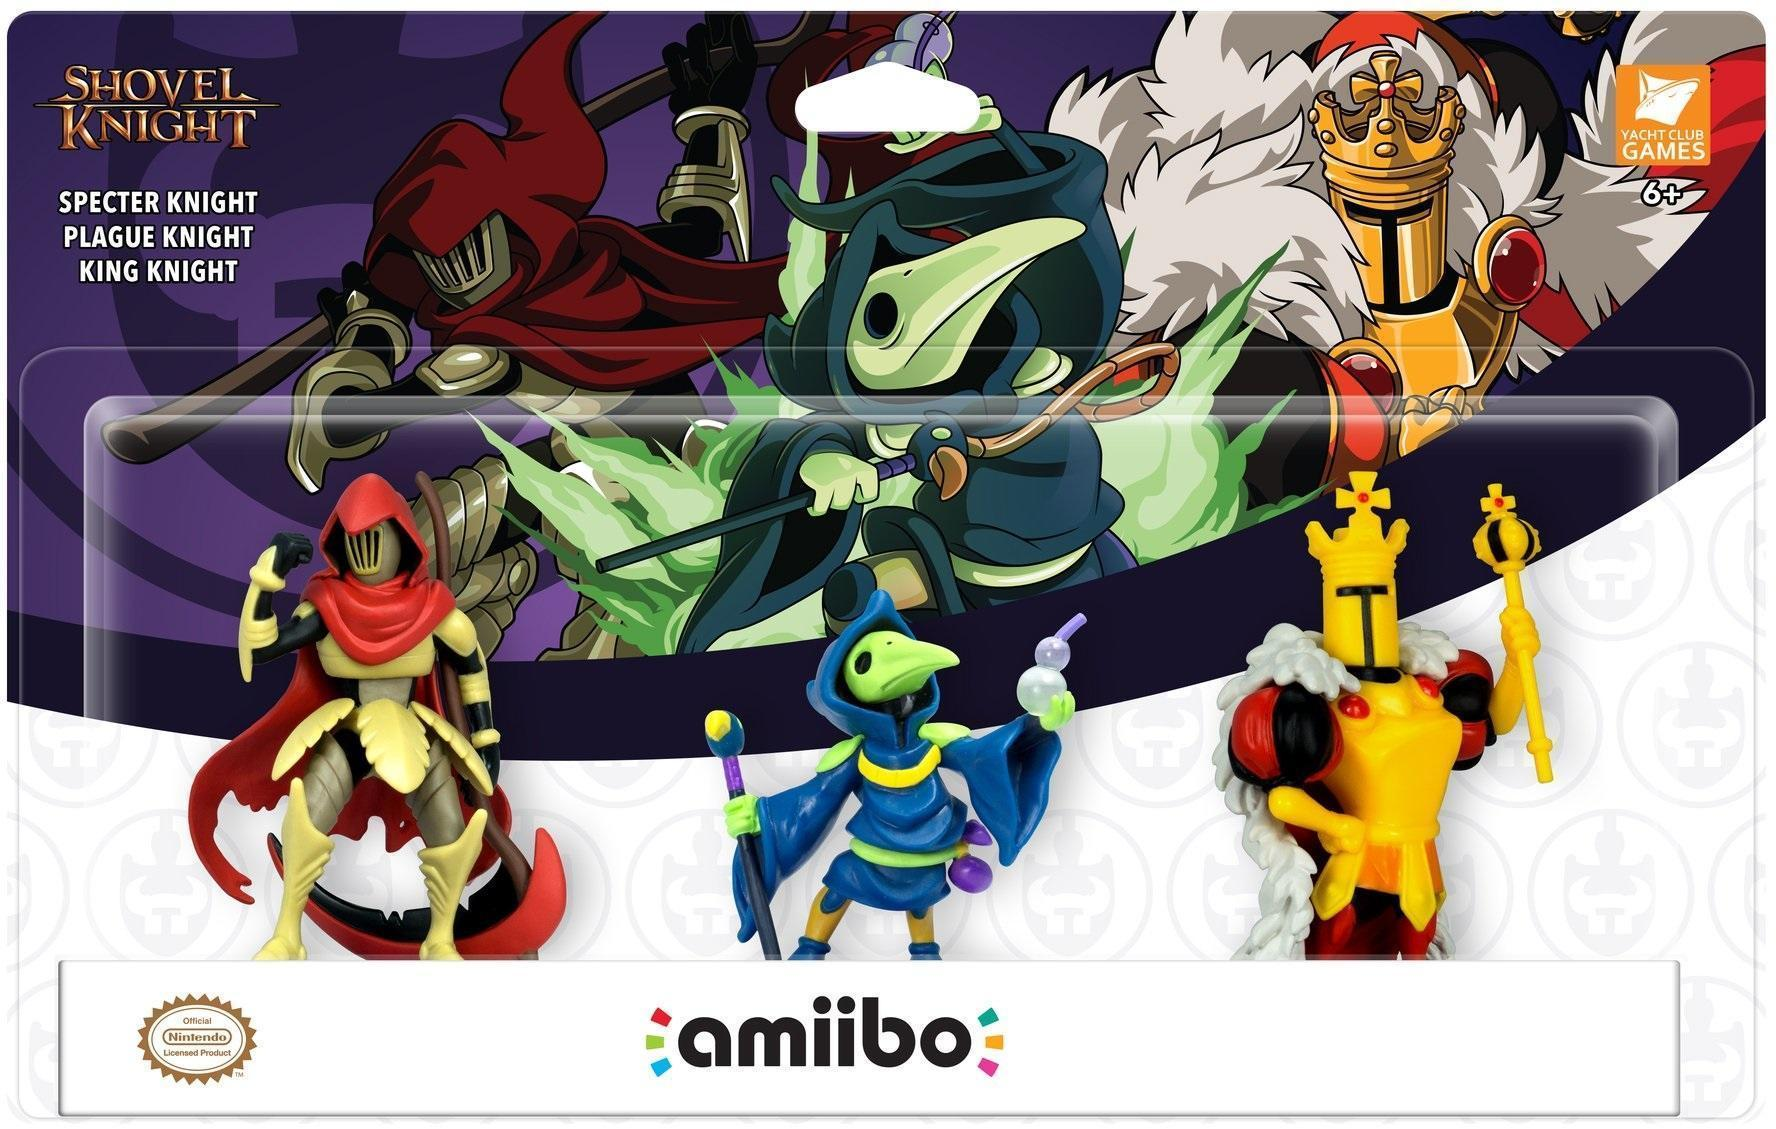 0901 Shovel Knight amiibo